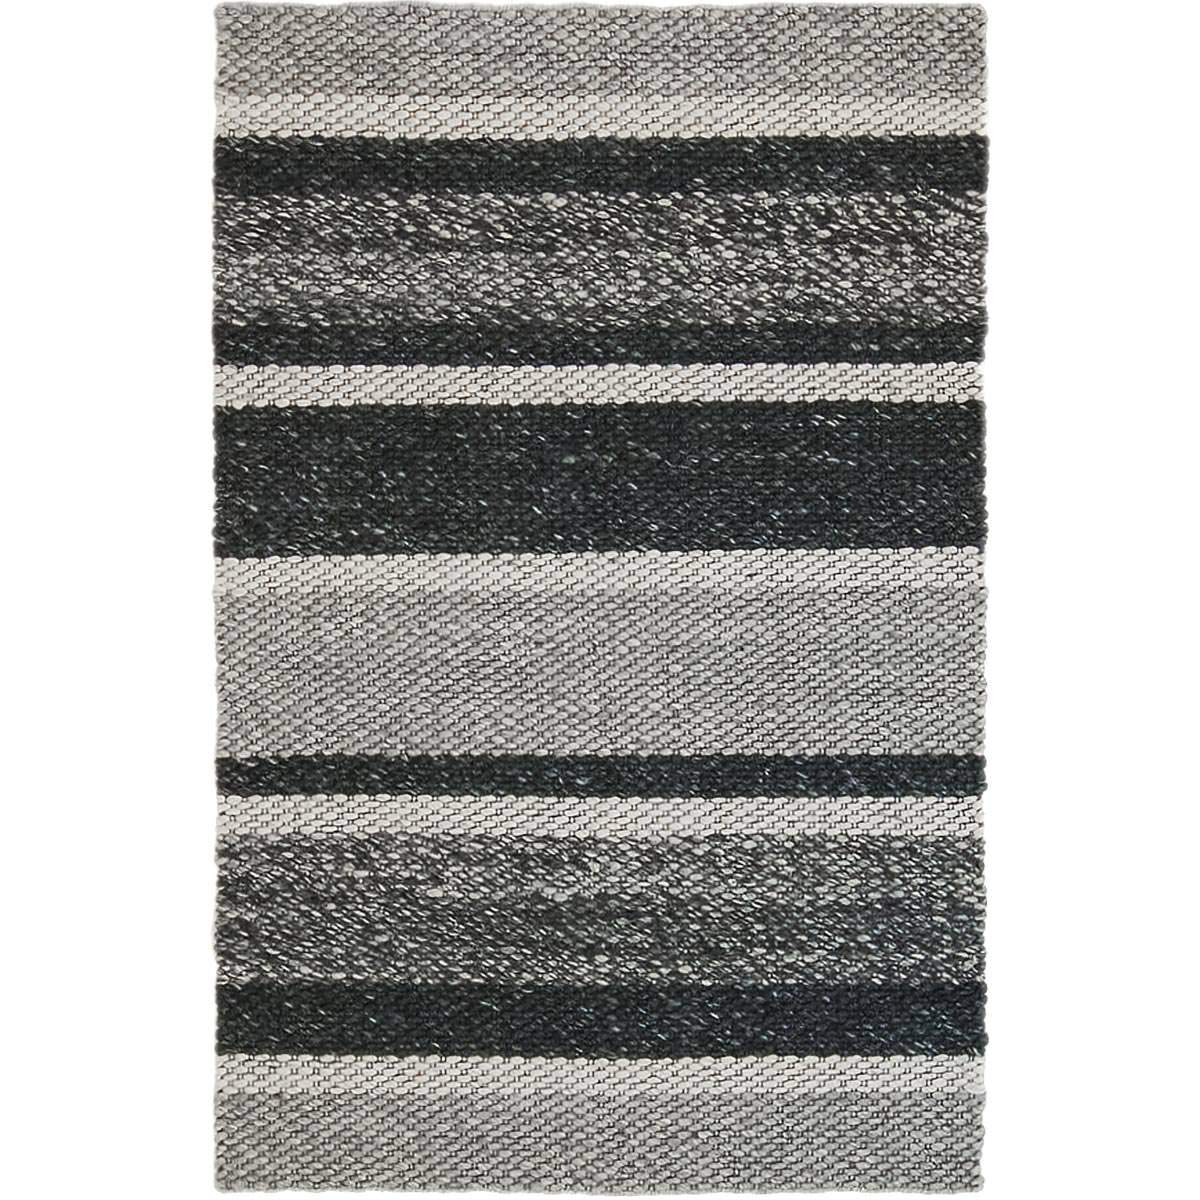 Braided Jute Rug 02 Grey/Black 1